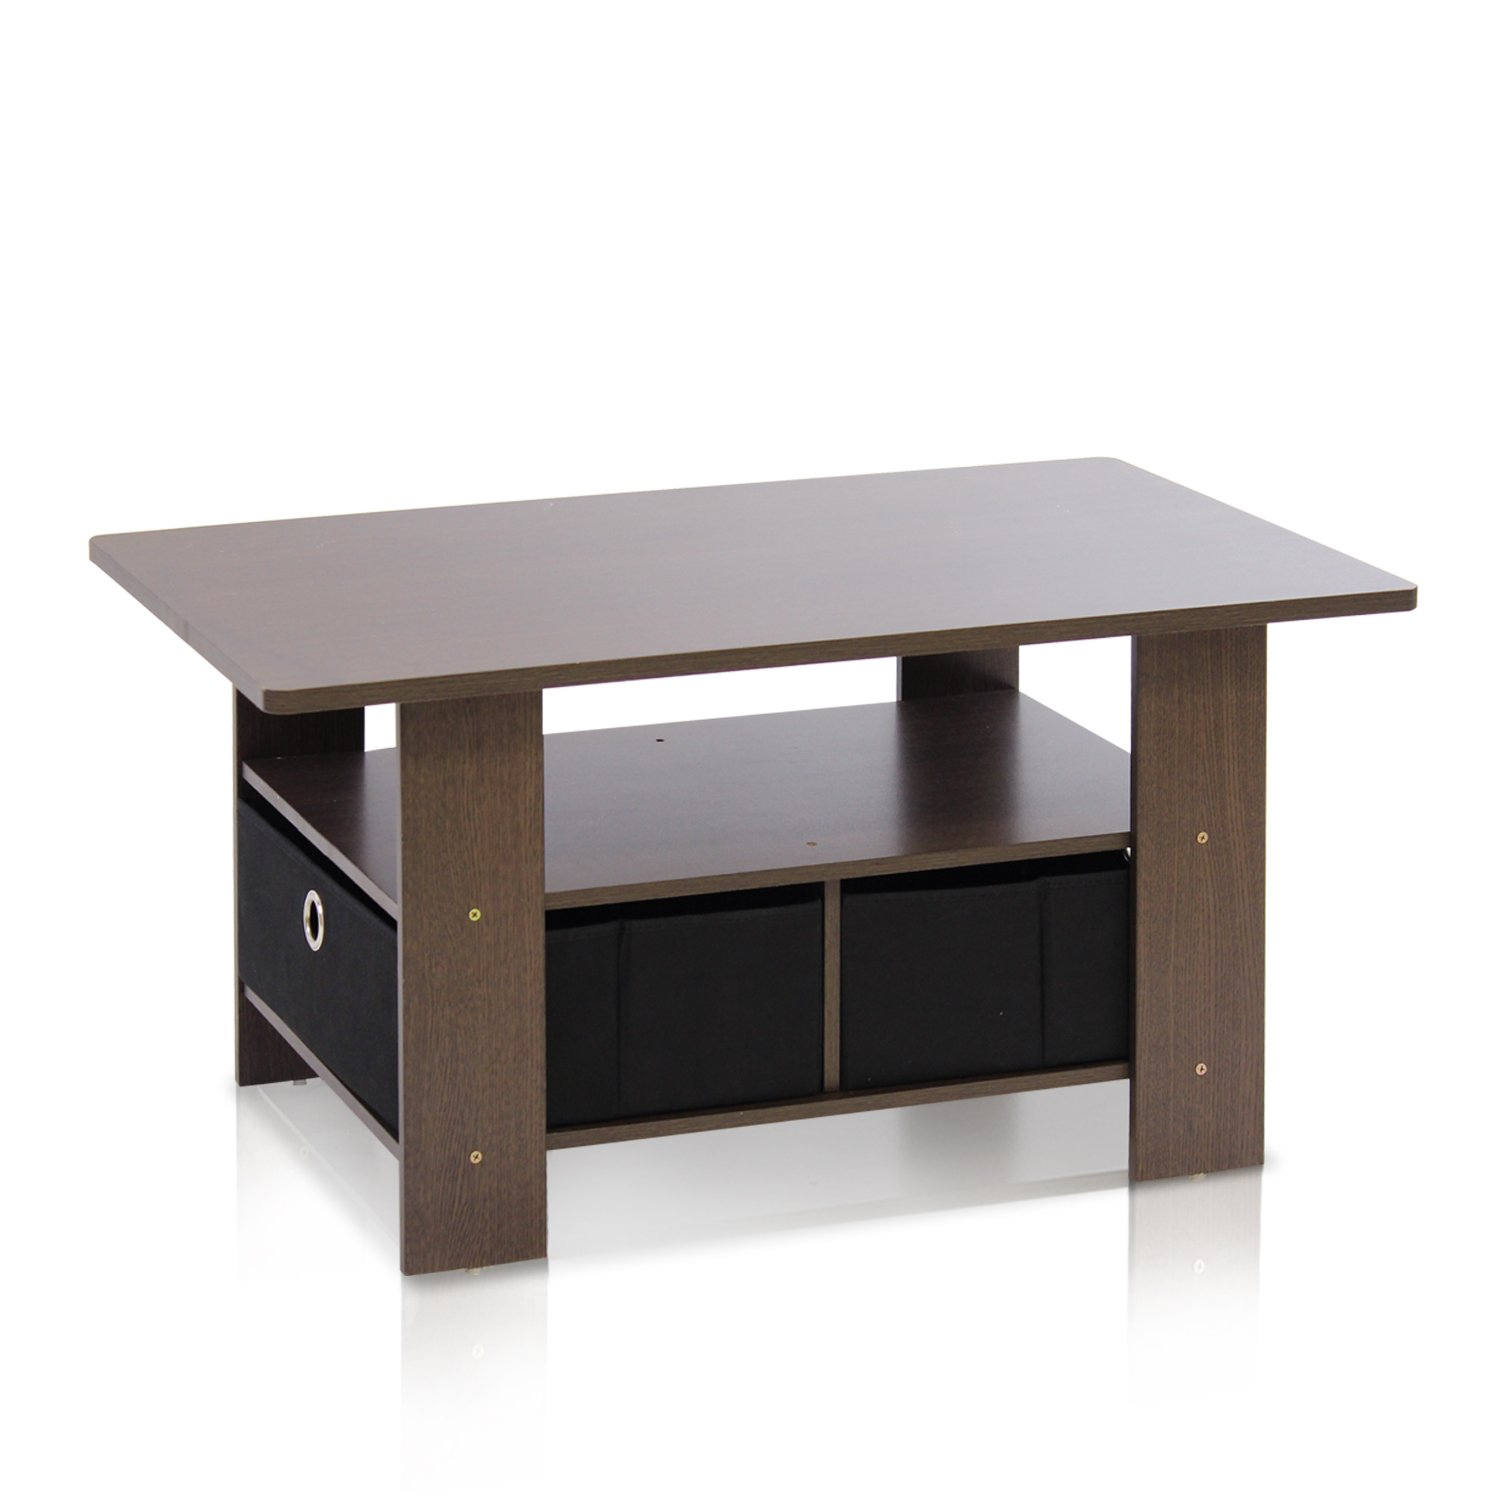 Furinno Coffee Table with Bins, Dark Brown/Black by Furinno